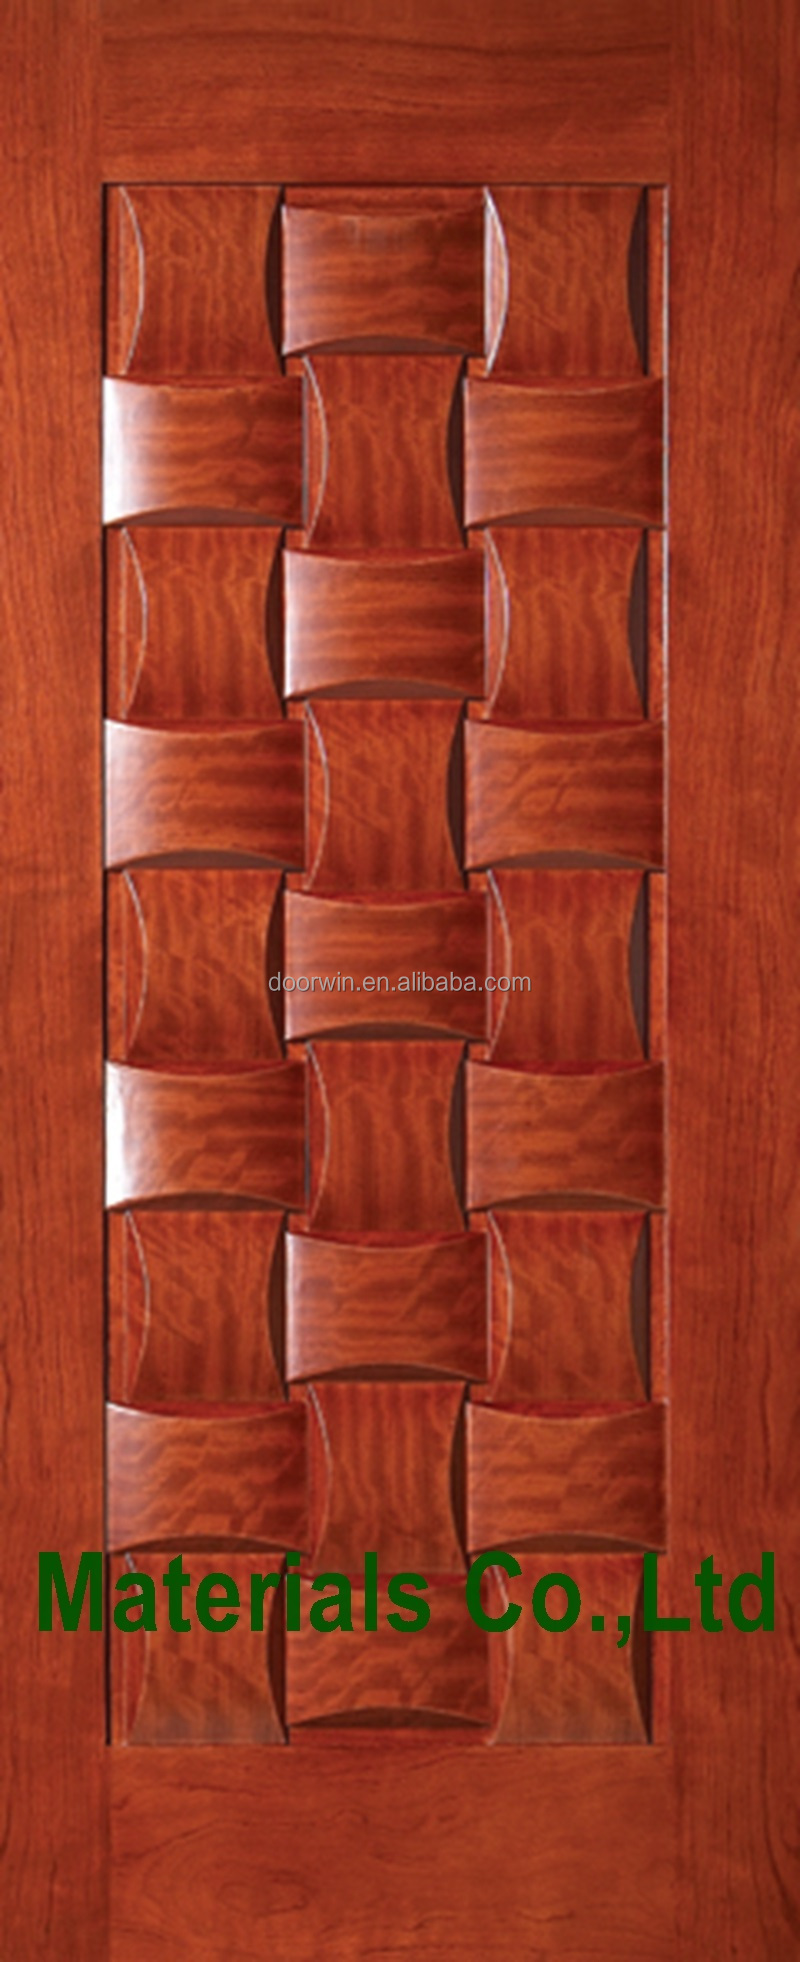 Teak Wood Door Designs Pictures : ... wooden door,wood door,interior door,bedroom door,entrence door